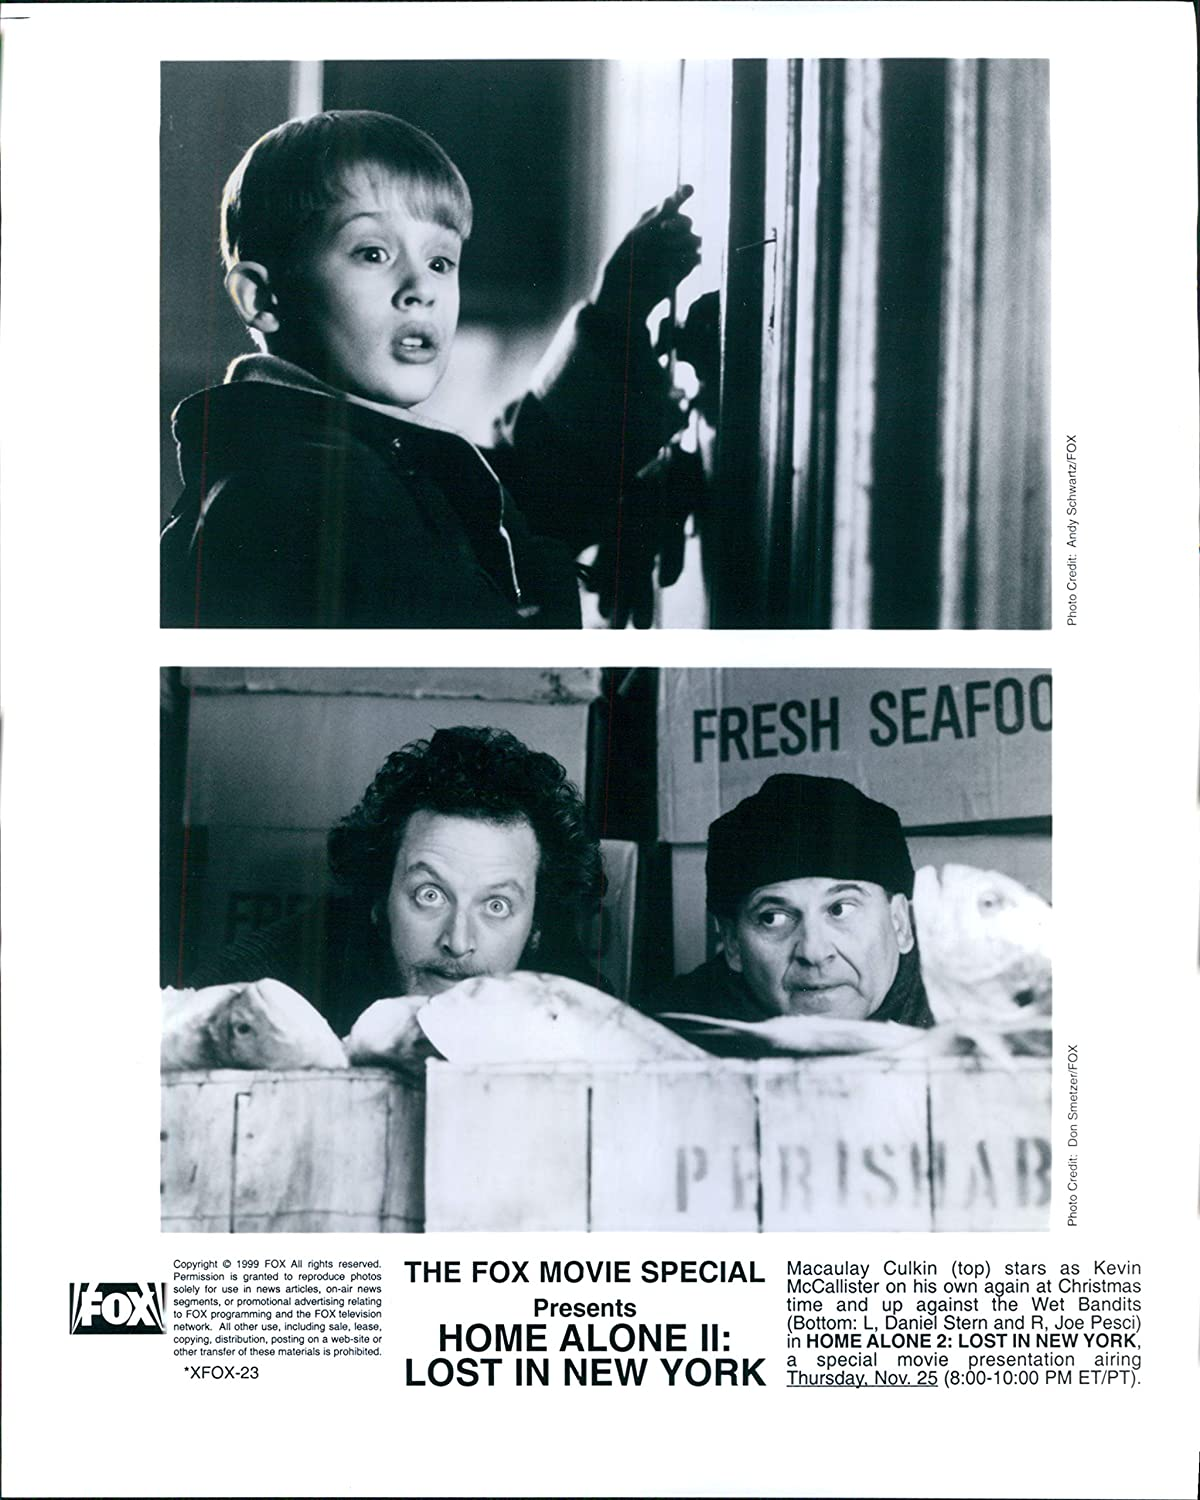 Vintage Photos 1999 Promo Actor Home Alone Ii Lost in New York Macaulay Culkin 8X10